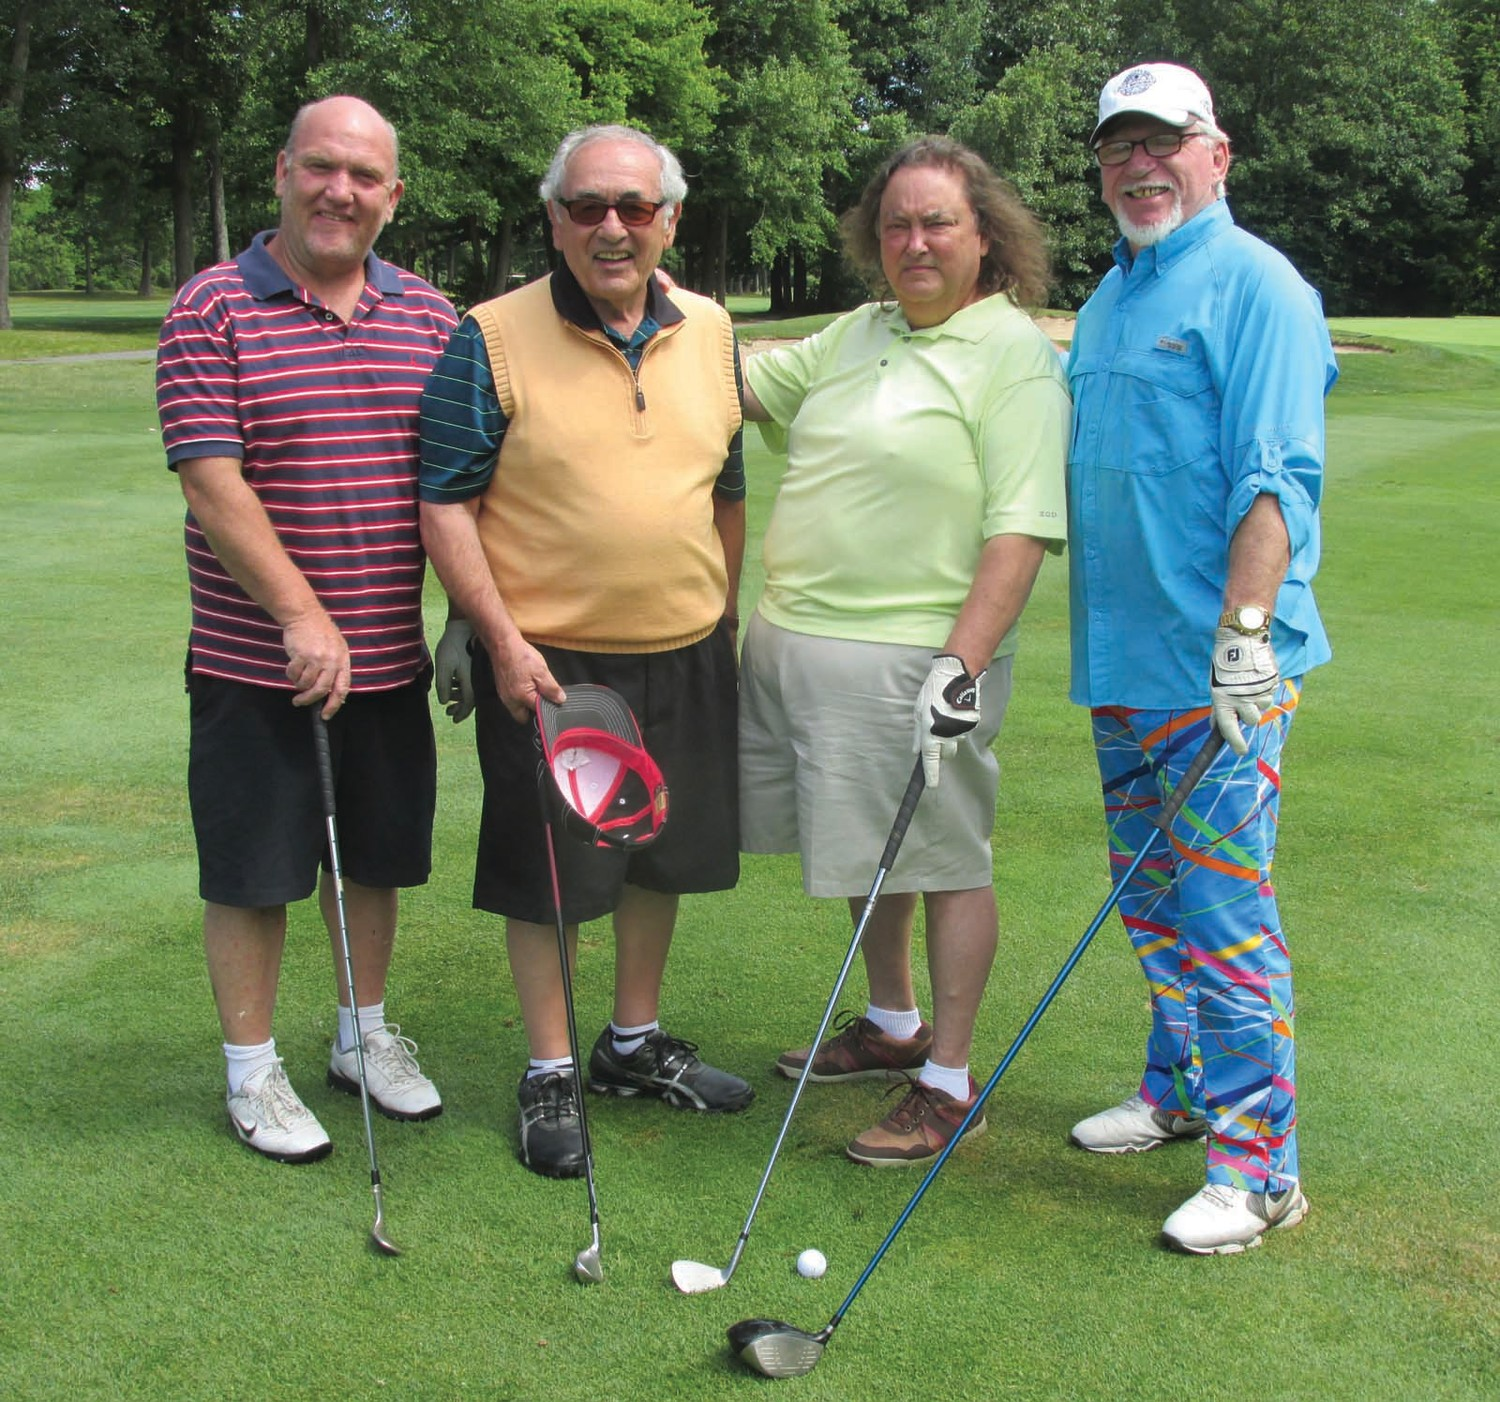 GRASSO'S GANG: Mark Rausio, Joe Grasso, Joe Piccardo and Sieve Wilcox made up this fun-loving foursome in the recent Out Lady of Grace Golf Tournament which was played at well-manicured Swansea Country Club.